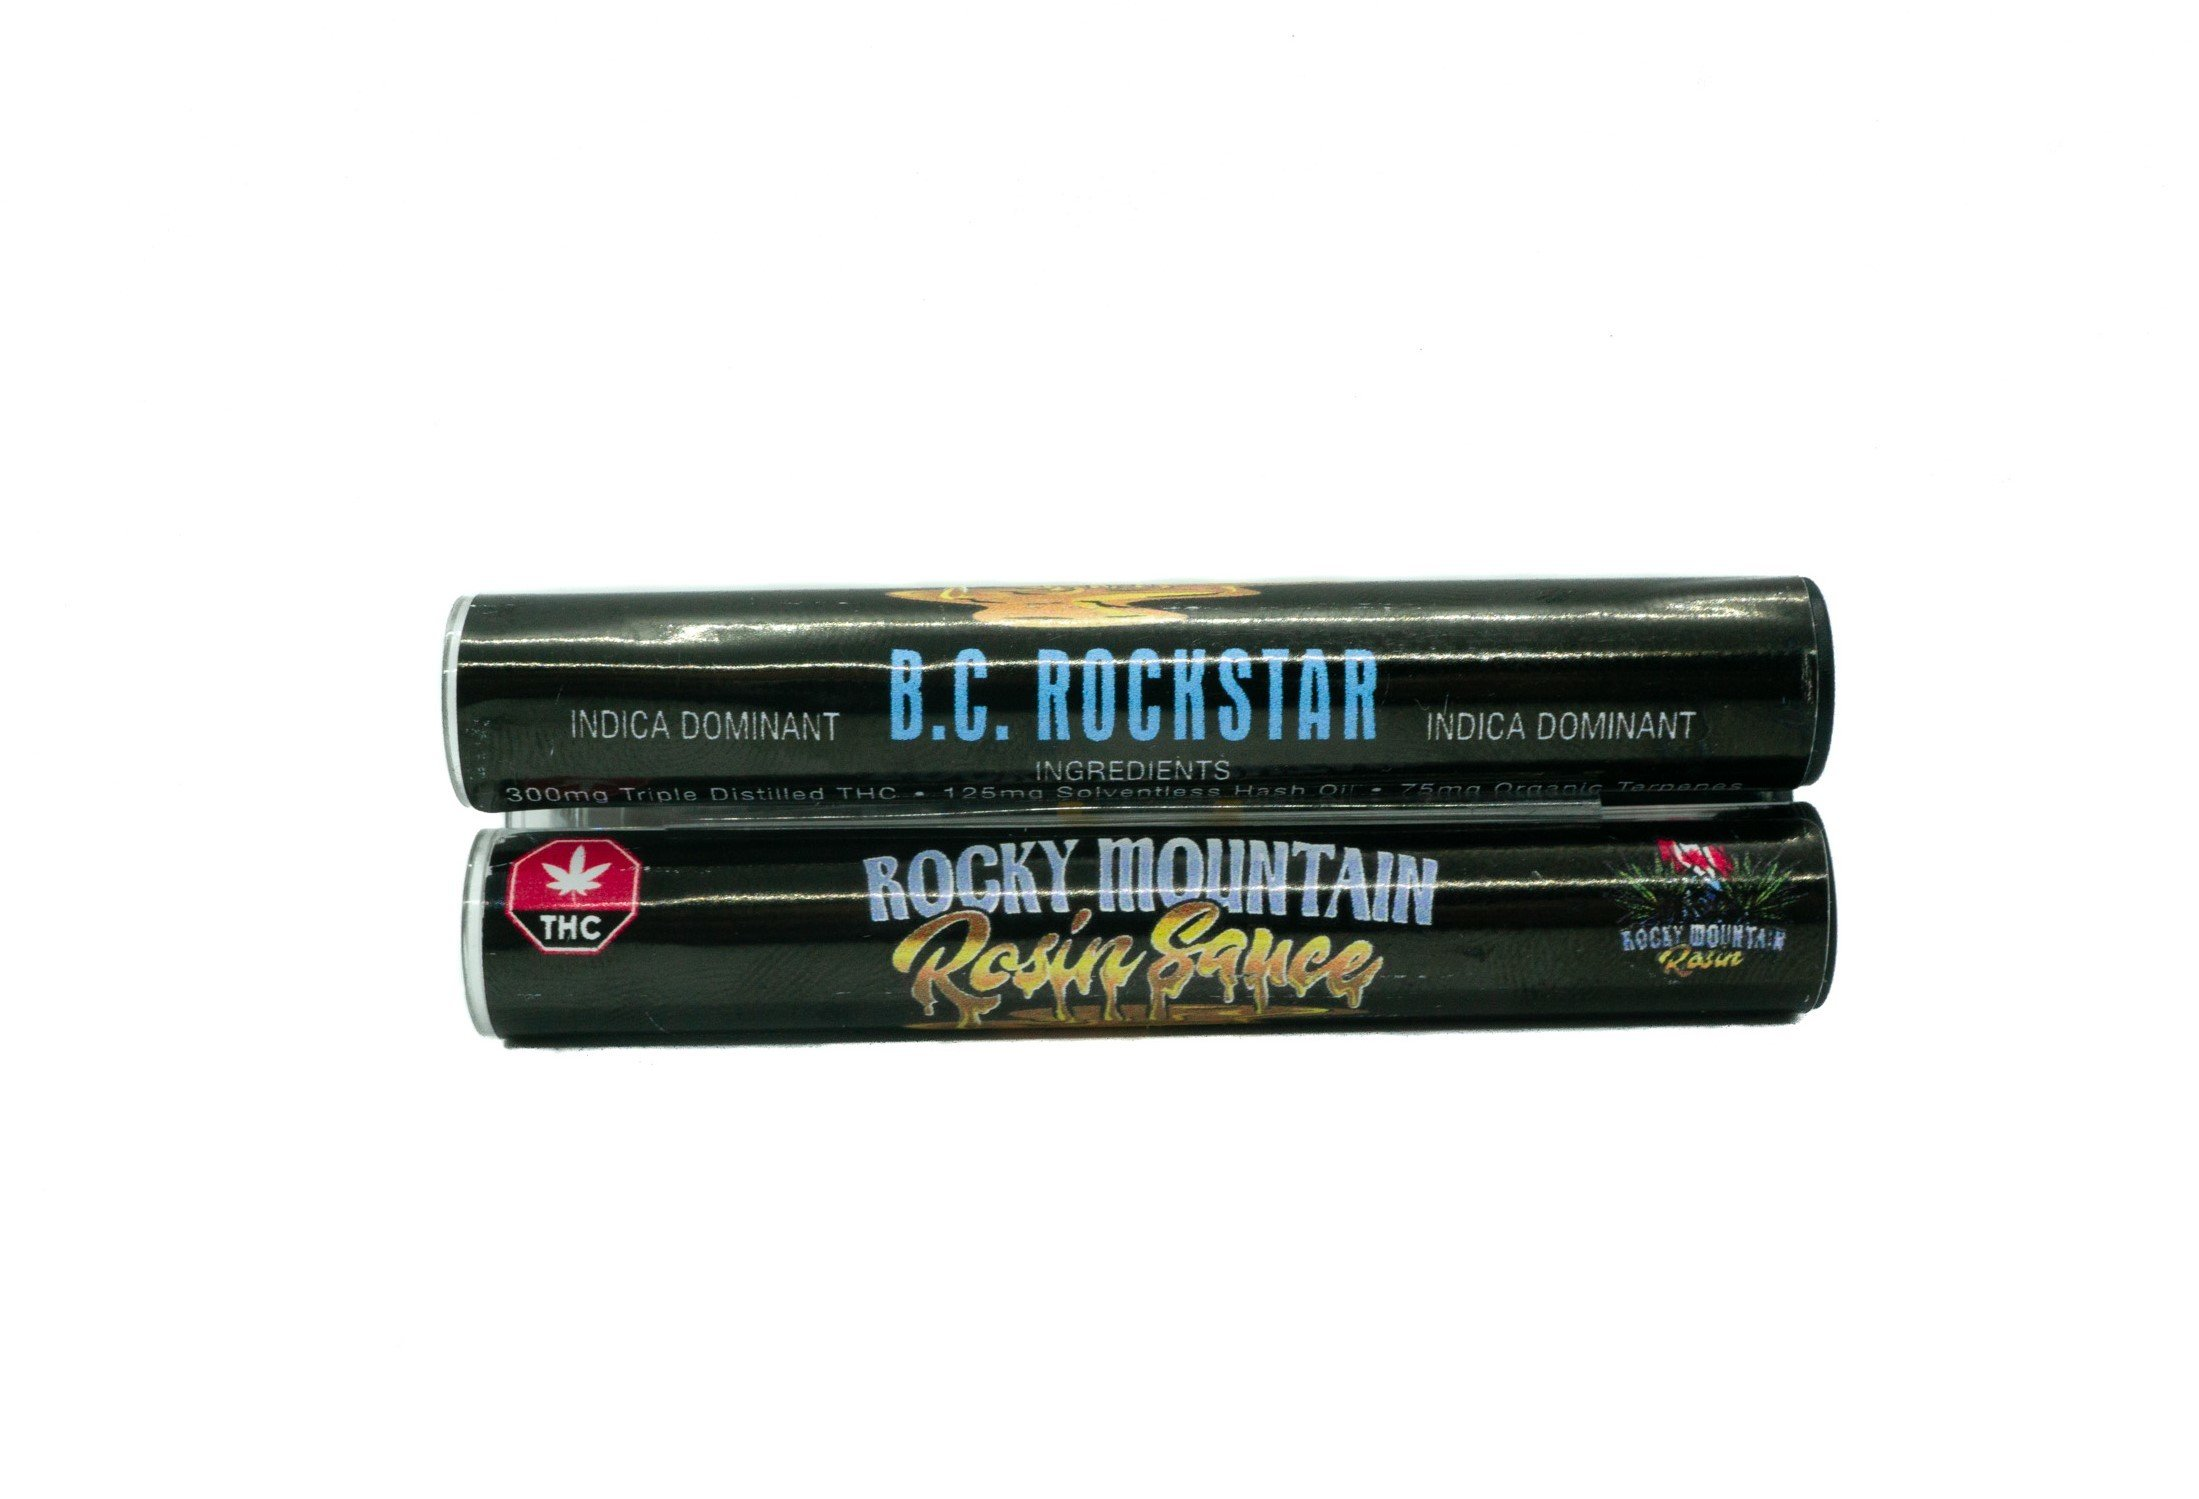 B.C Rockstar Rosin Sauce Replacement Cartridge by Rocky Mountain 01206